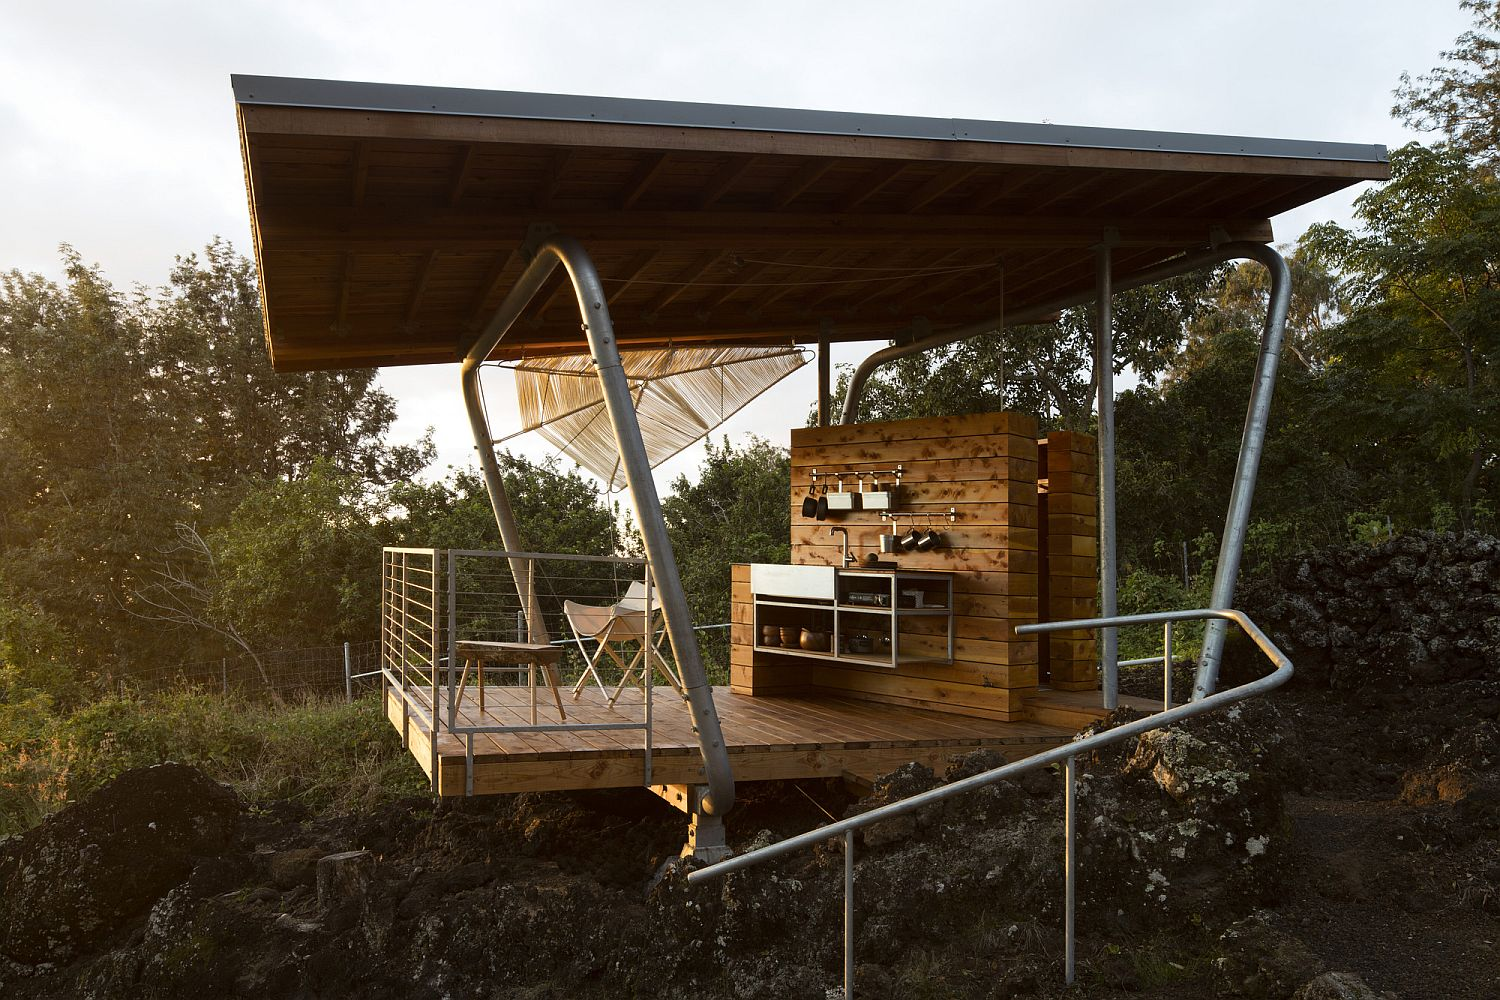 Pavilion-style-outdoor-unit-of-Outside-House-in-Maui